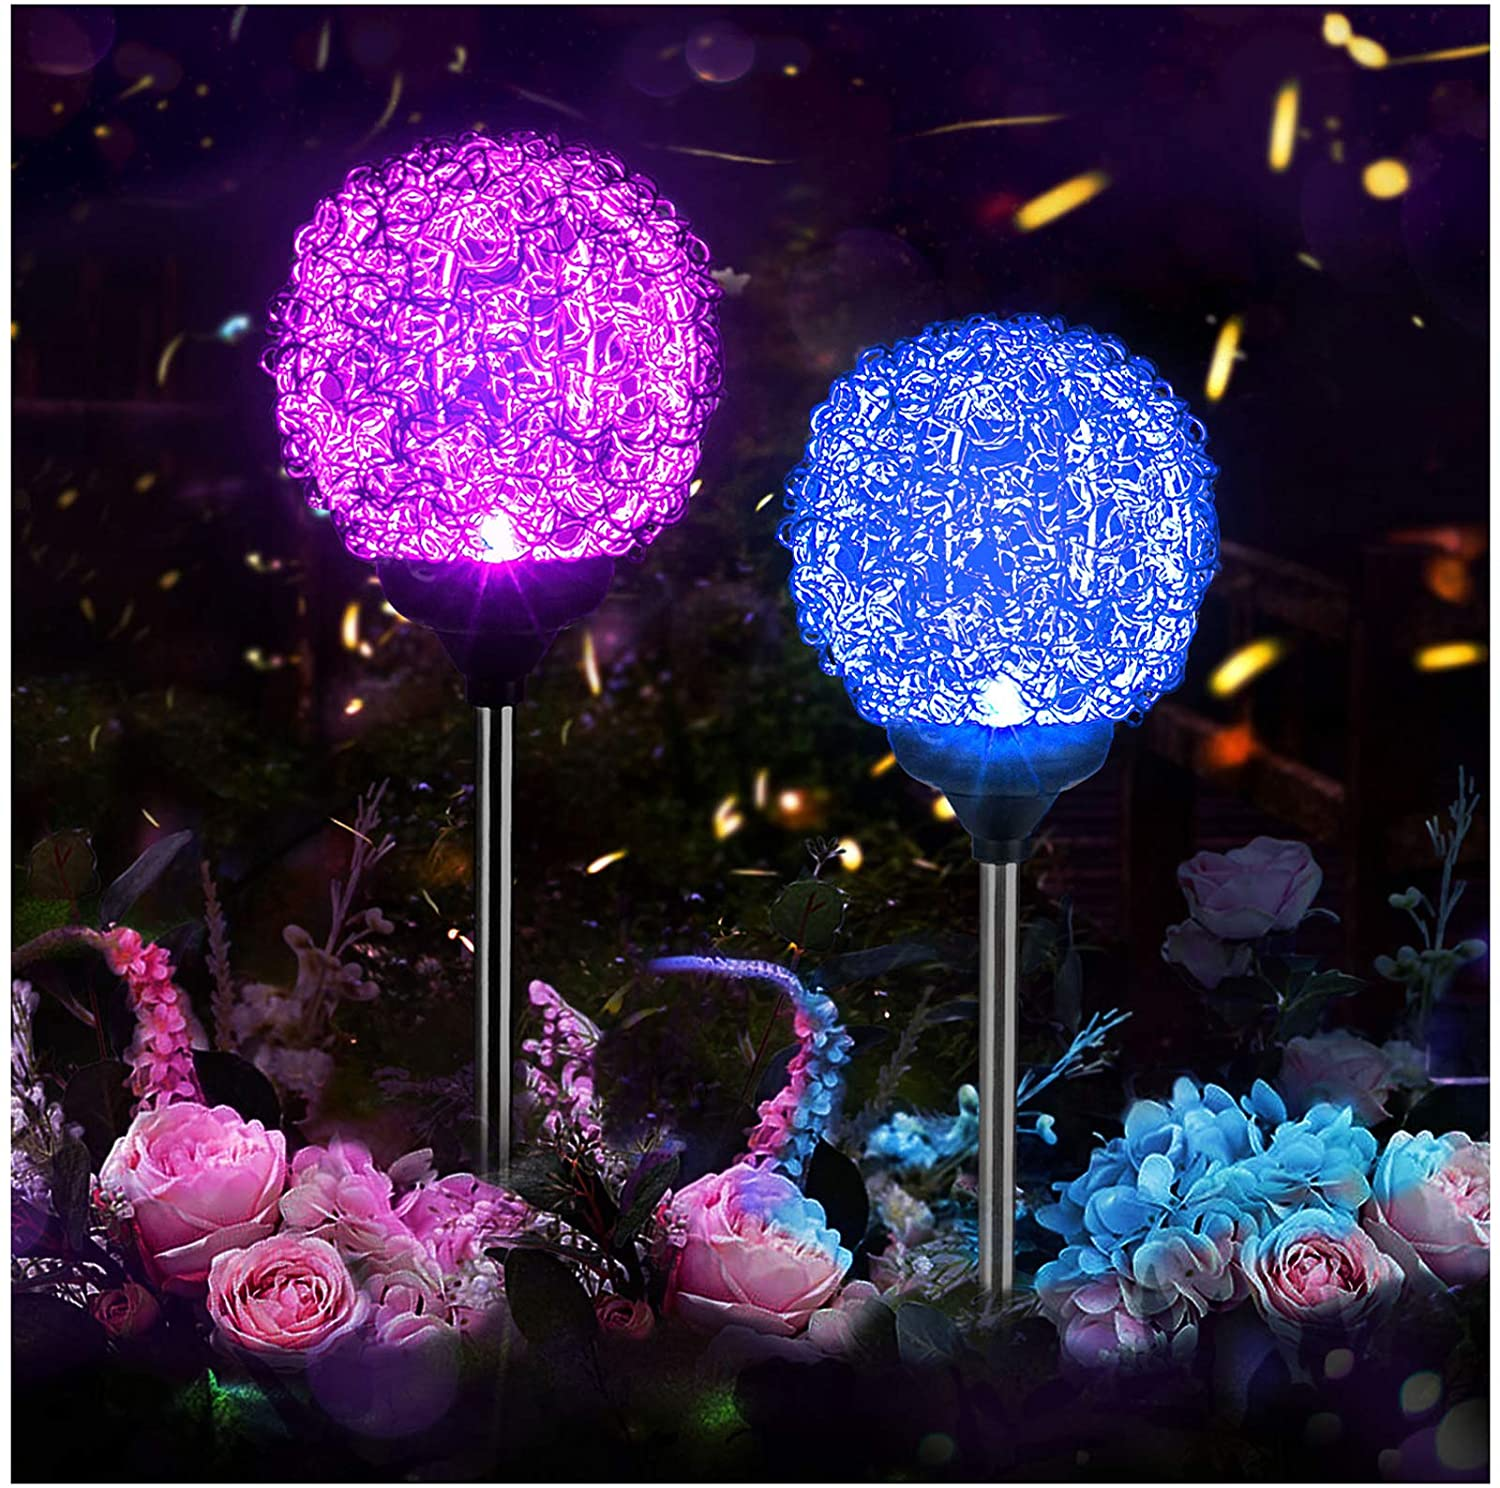 Solar Garden Lights Outdoor, Upgraded Magic Globe Powered Garden Light, Multi-Color Changing LED Solar Stake Lights for Patio Backyard Pathway Party Decoration (2 PCS)